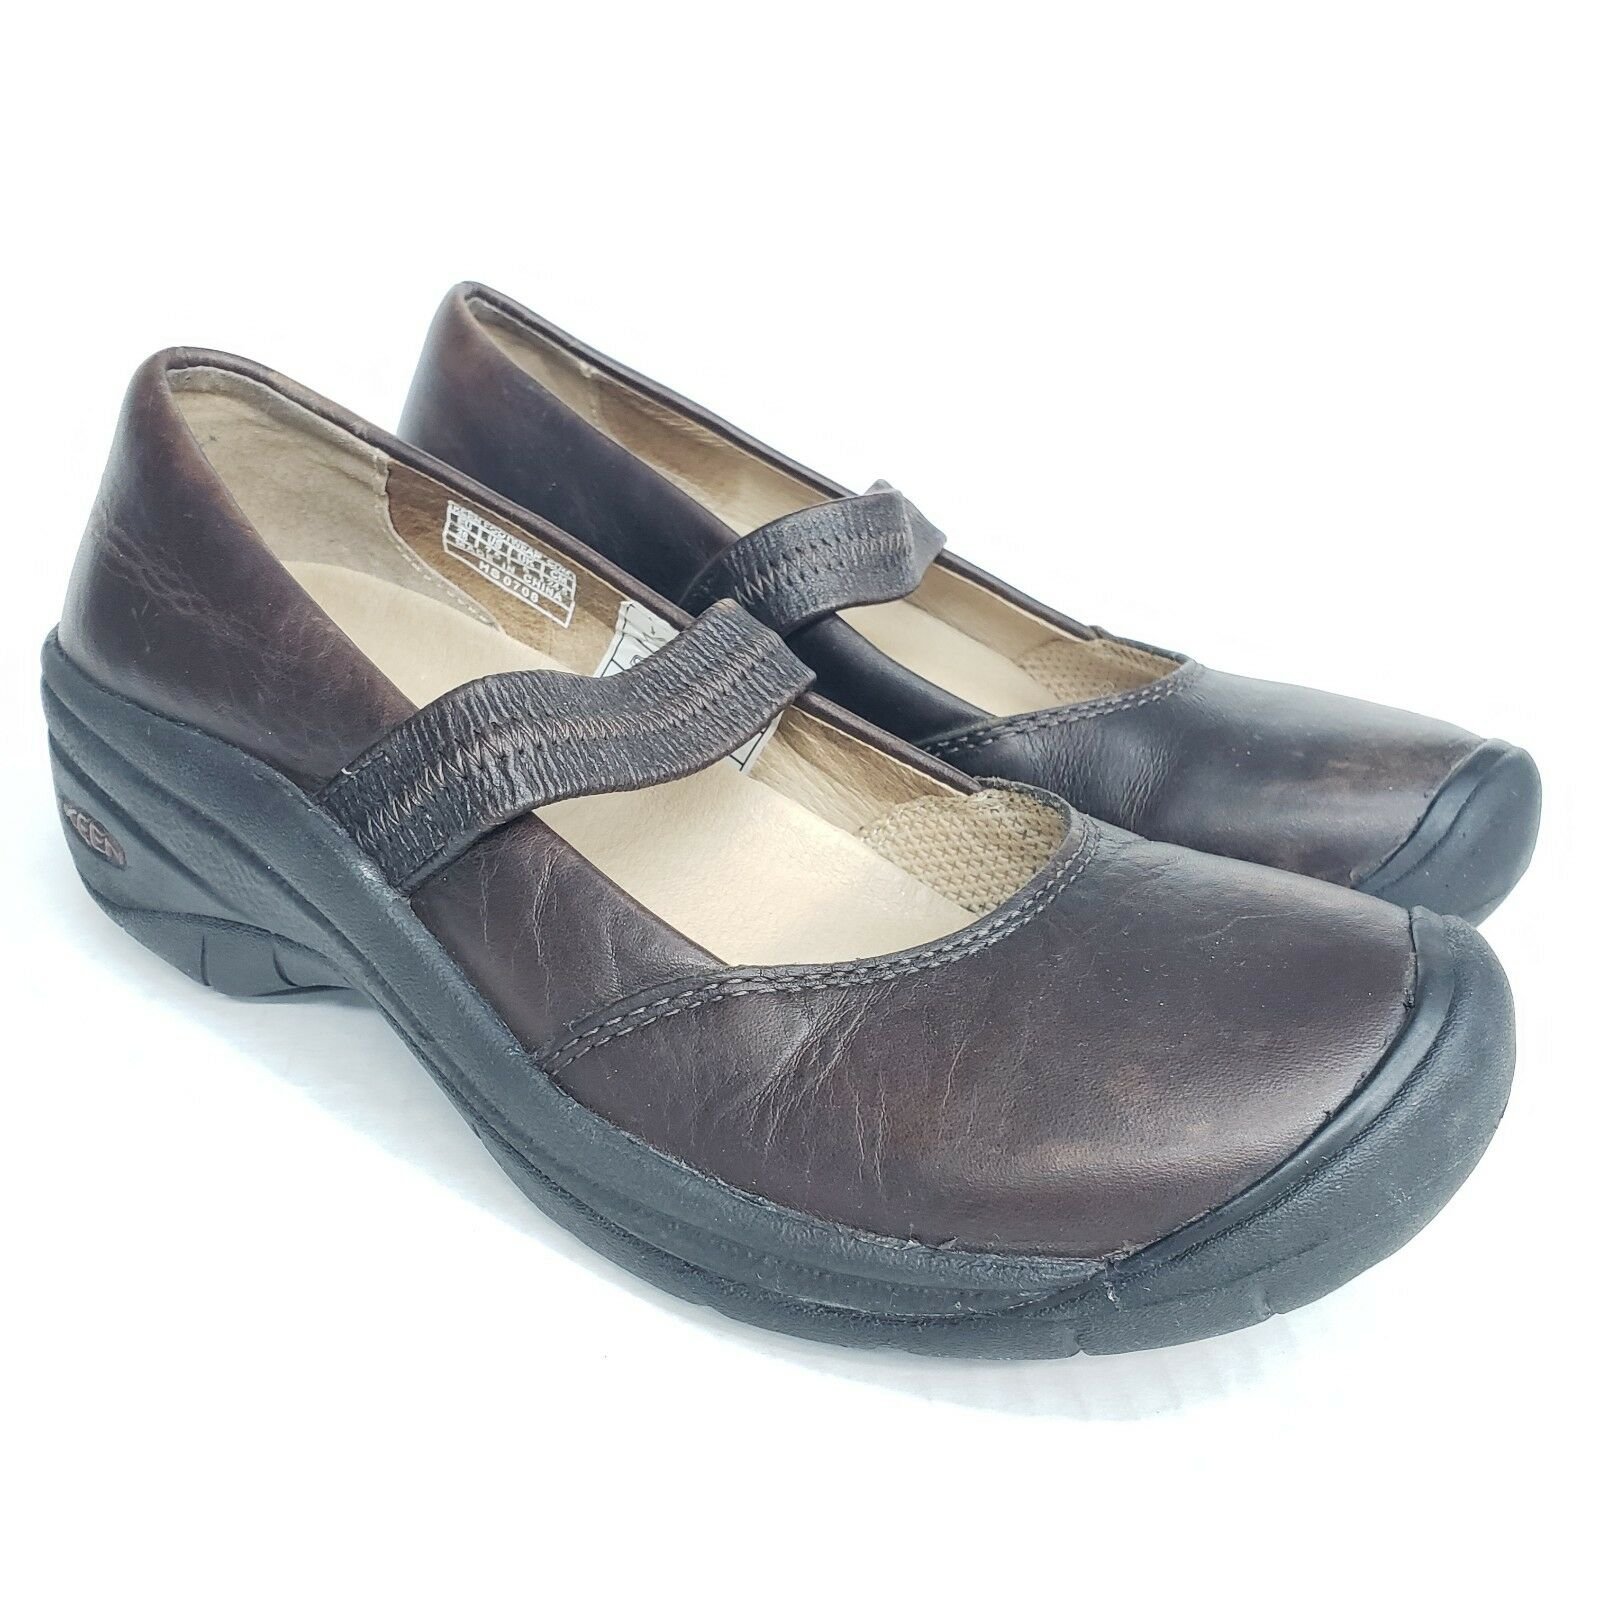 KEEN Women's shoes Mary Jane Mules Size 7.5  Brown Leather